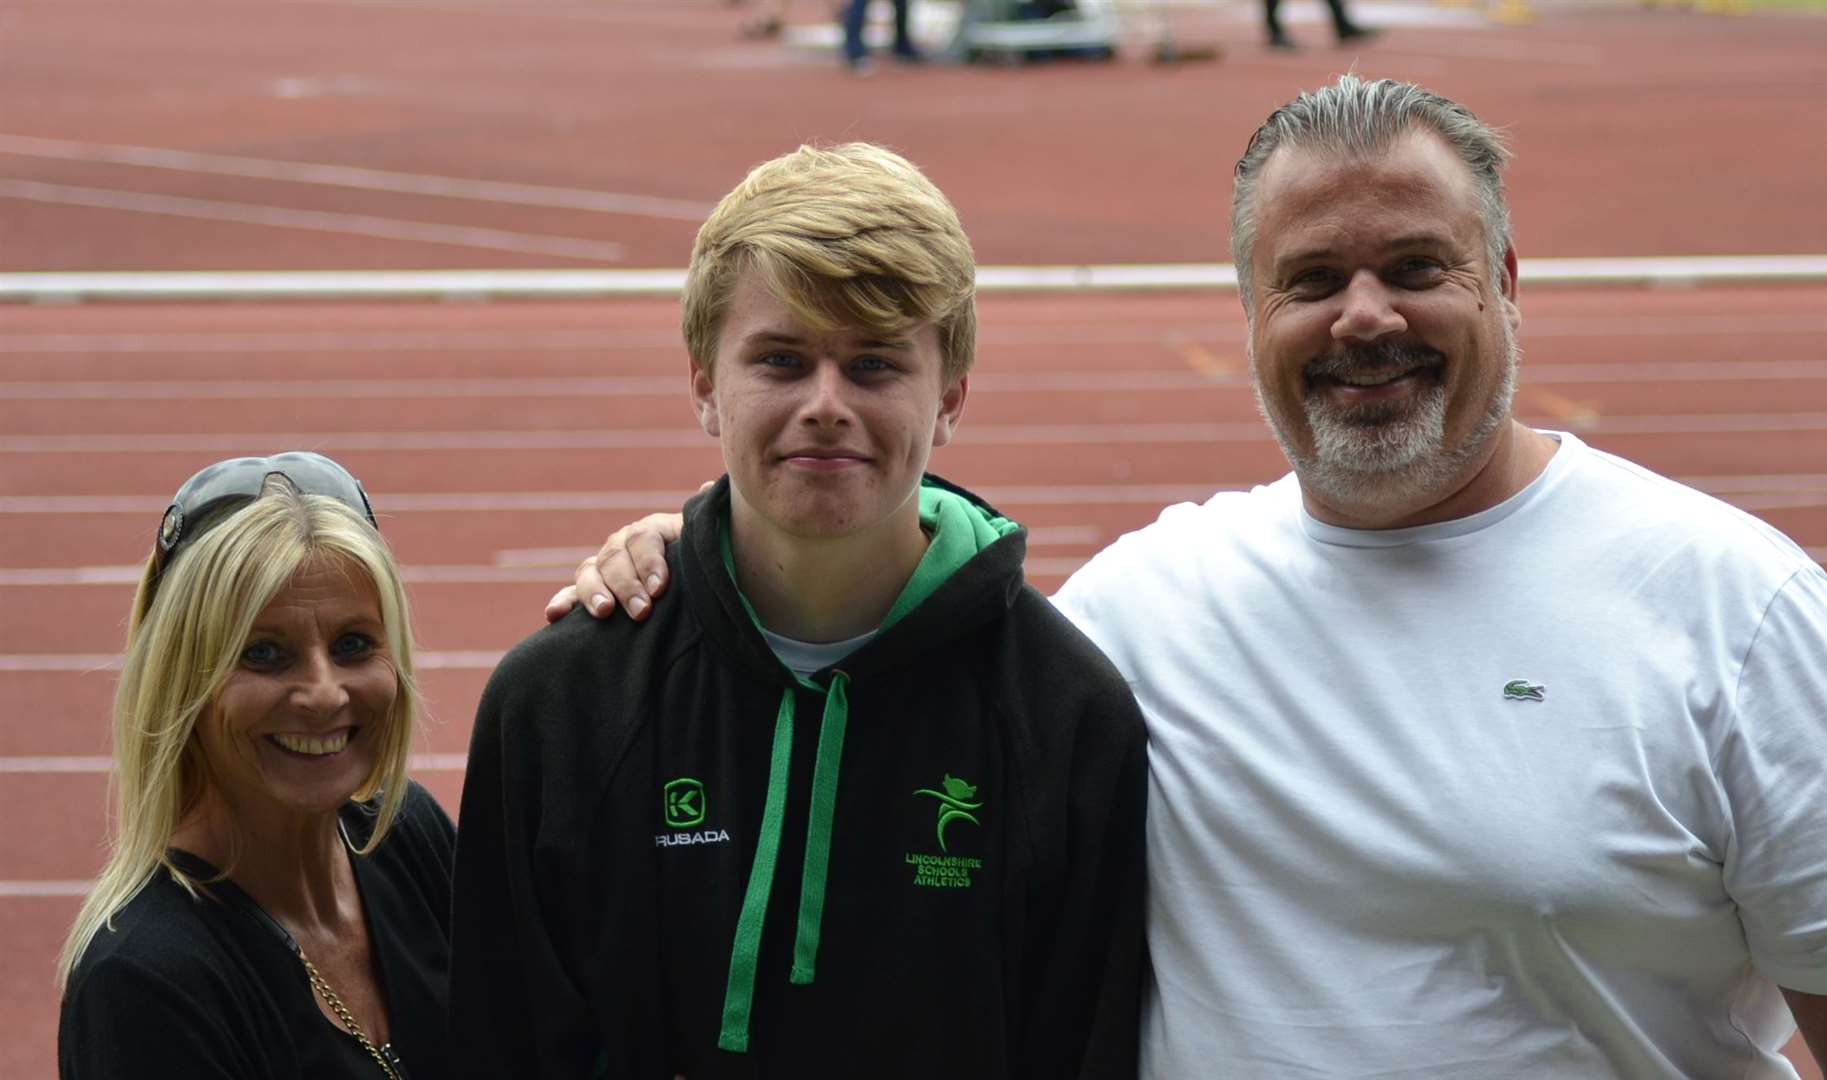 Donovan Capes with mum Samantha and dad/coach Lewis after winning the junior boys shot put competition at the English Schools Track and Field Championships in Birmingham.Photo supplied.